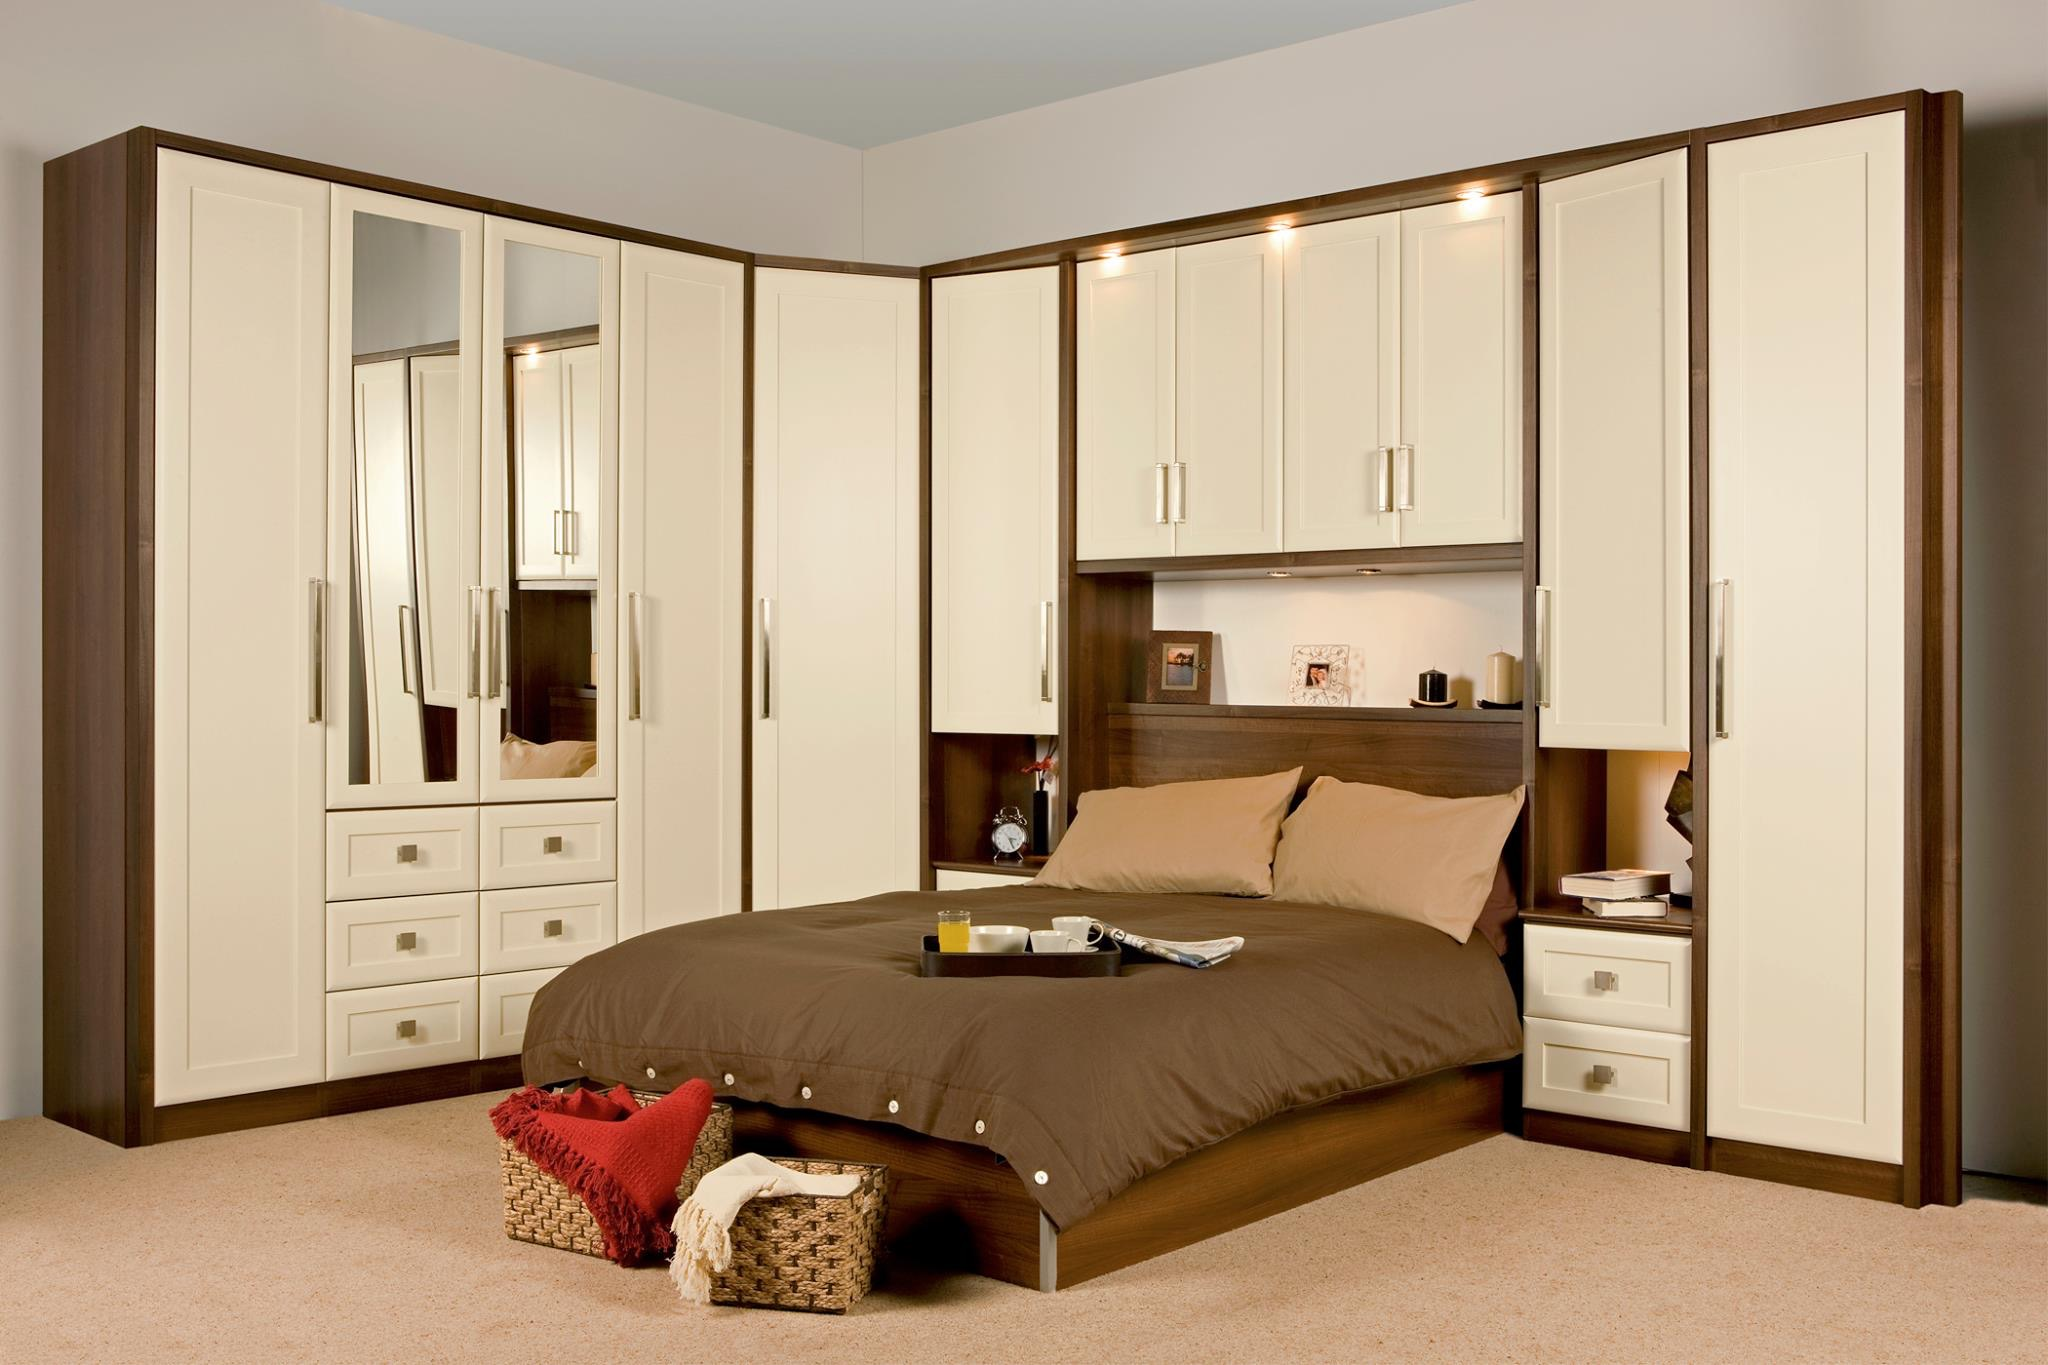 Fitted bedroom furniture designs Fitted bedroom furniture